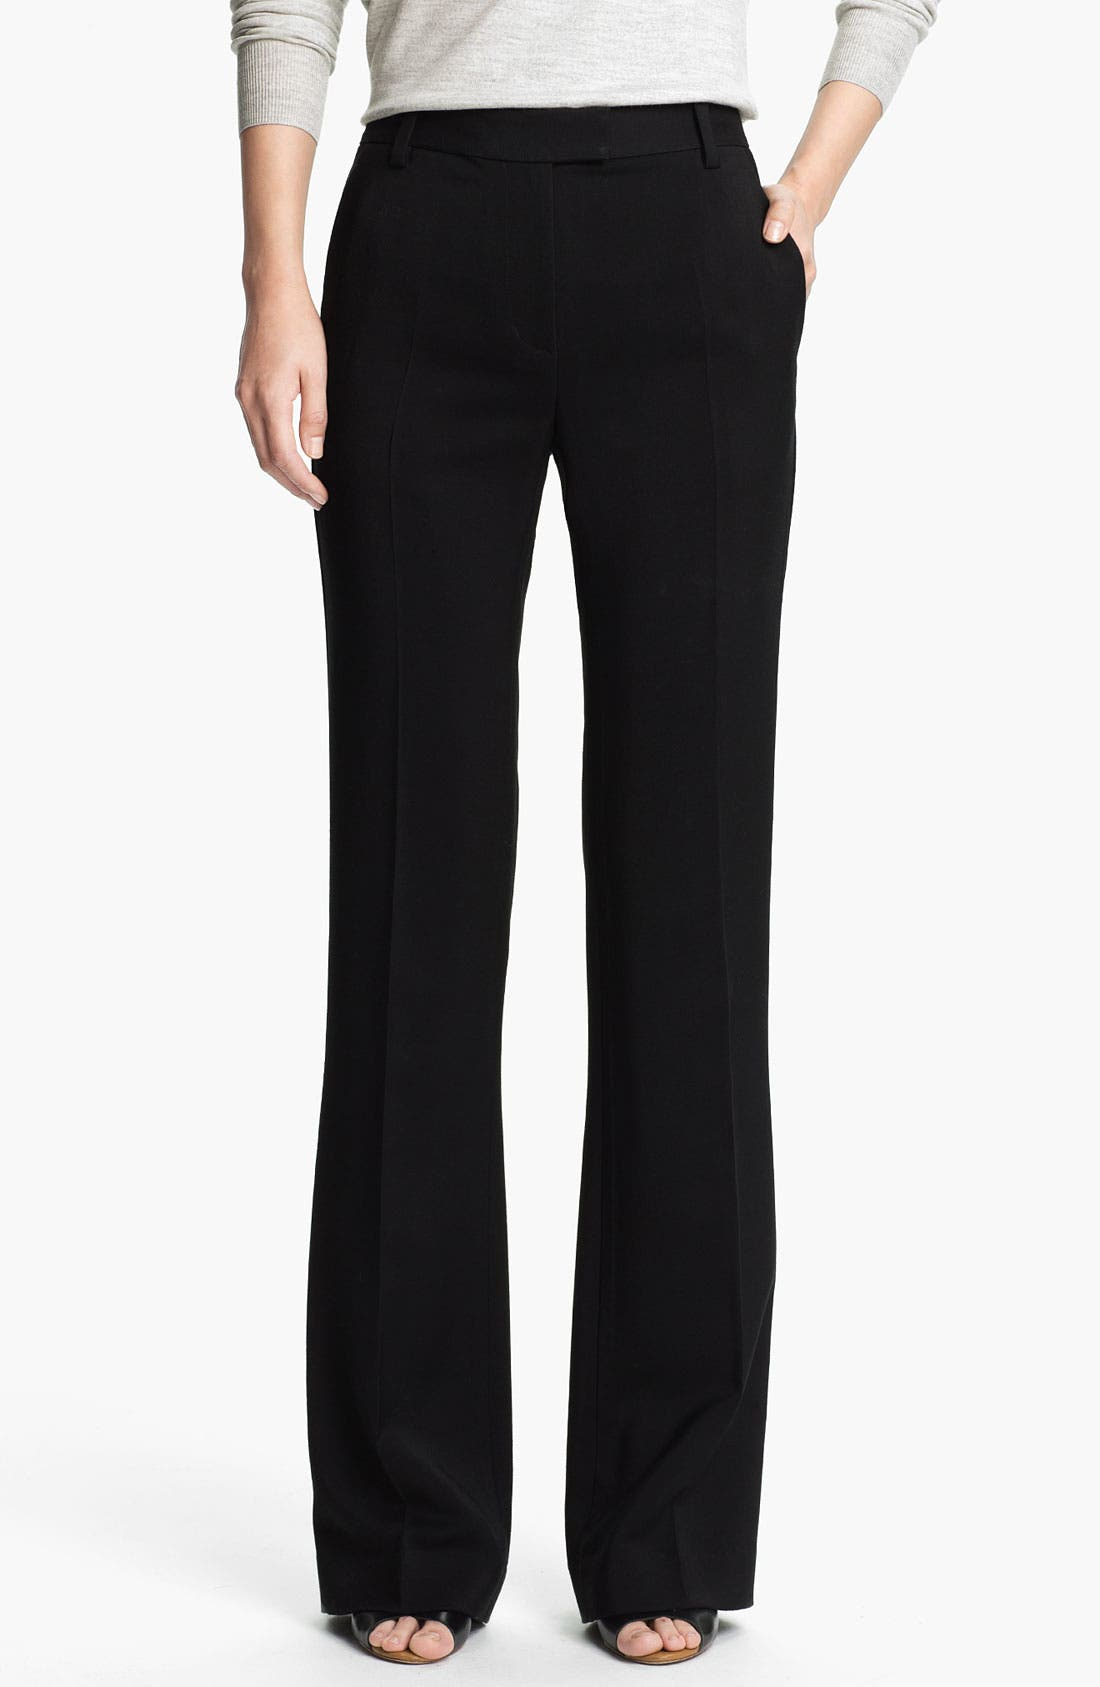 Alternate Image 1 Selected - 3.1 Phillip Lim Stovepipe Trousers